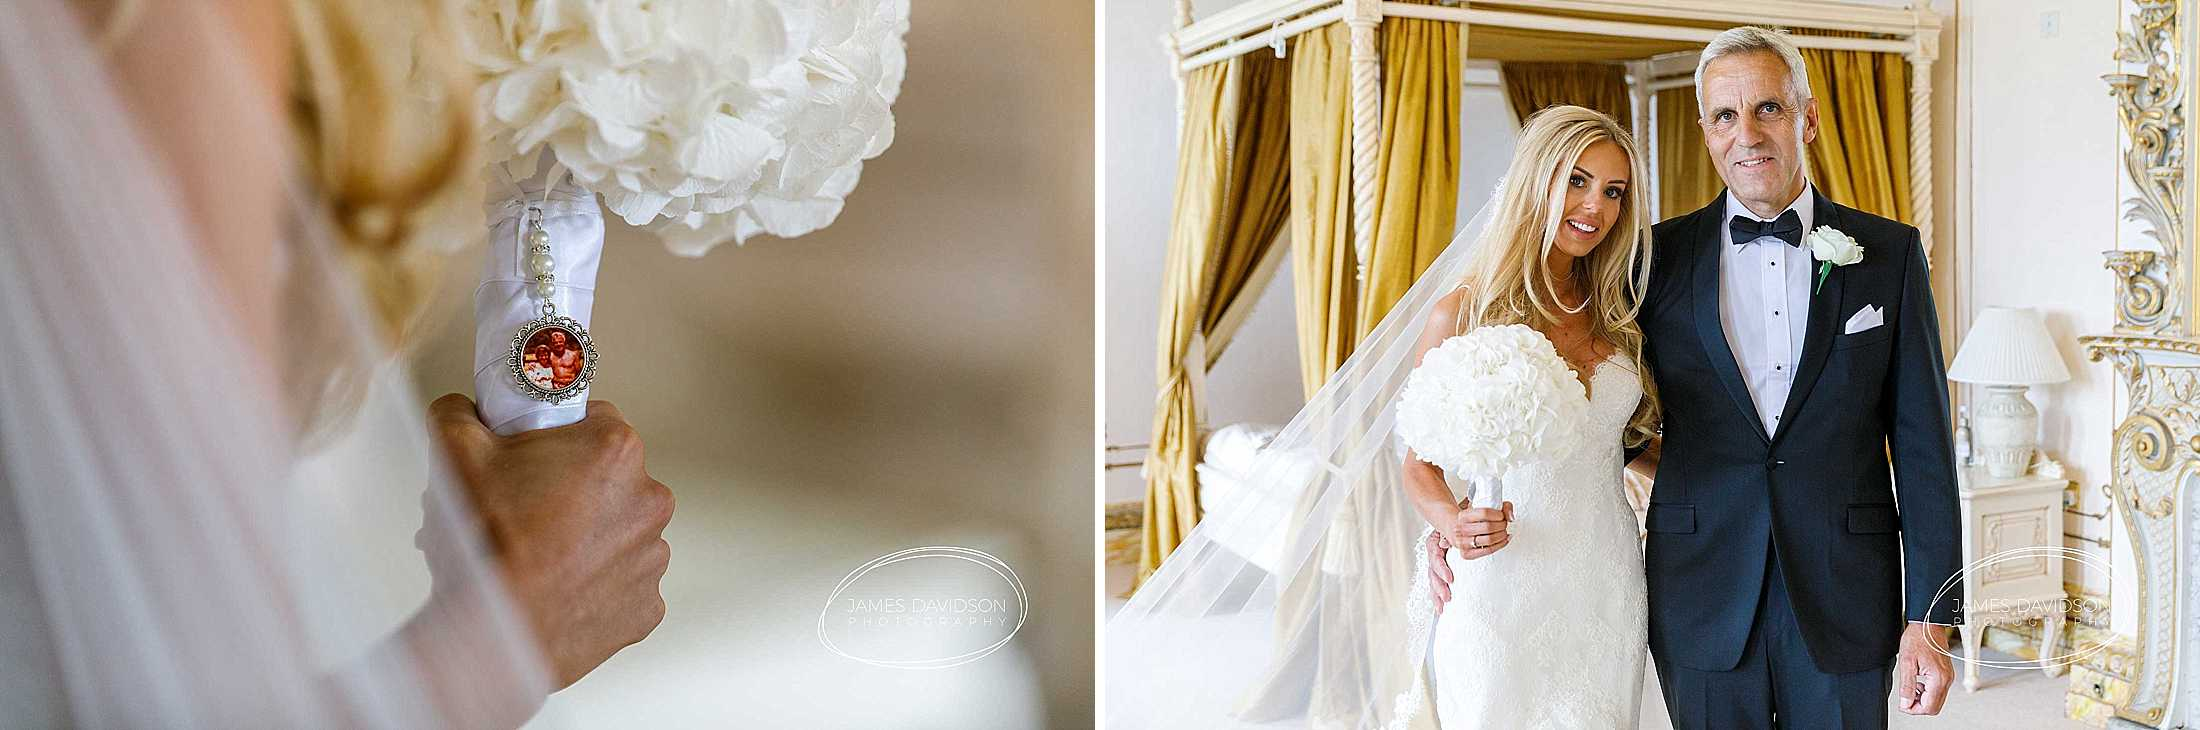 gosfield-hall-wedding-photography-040